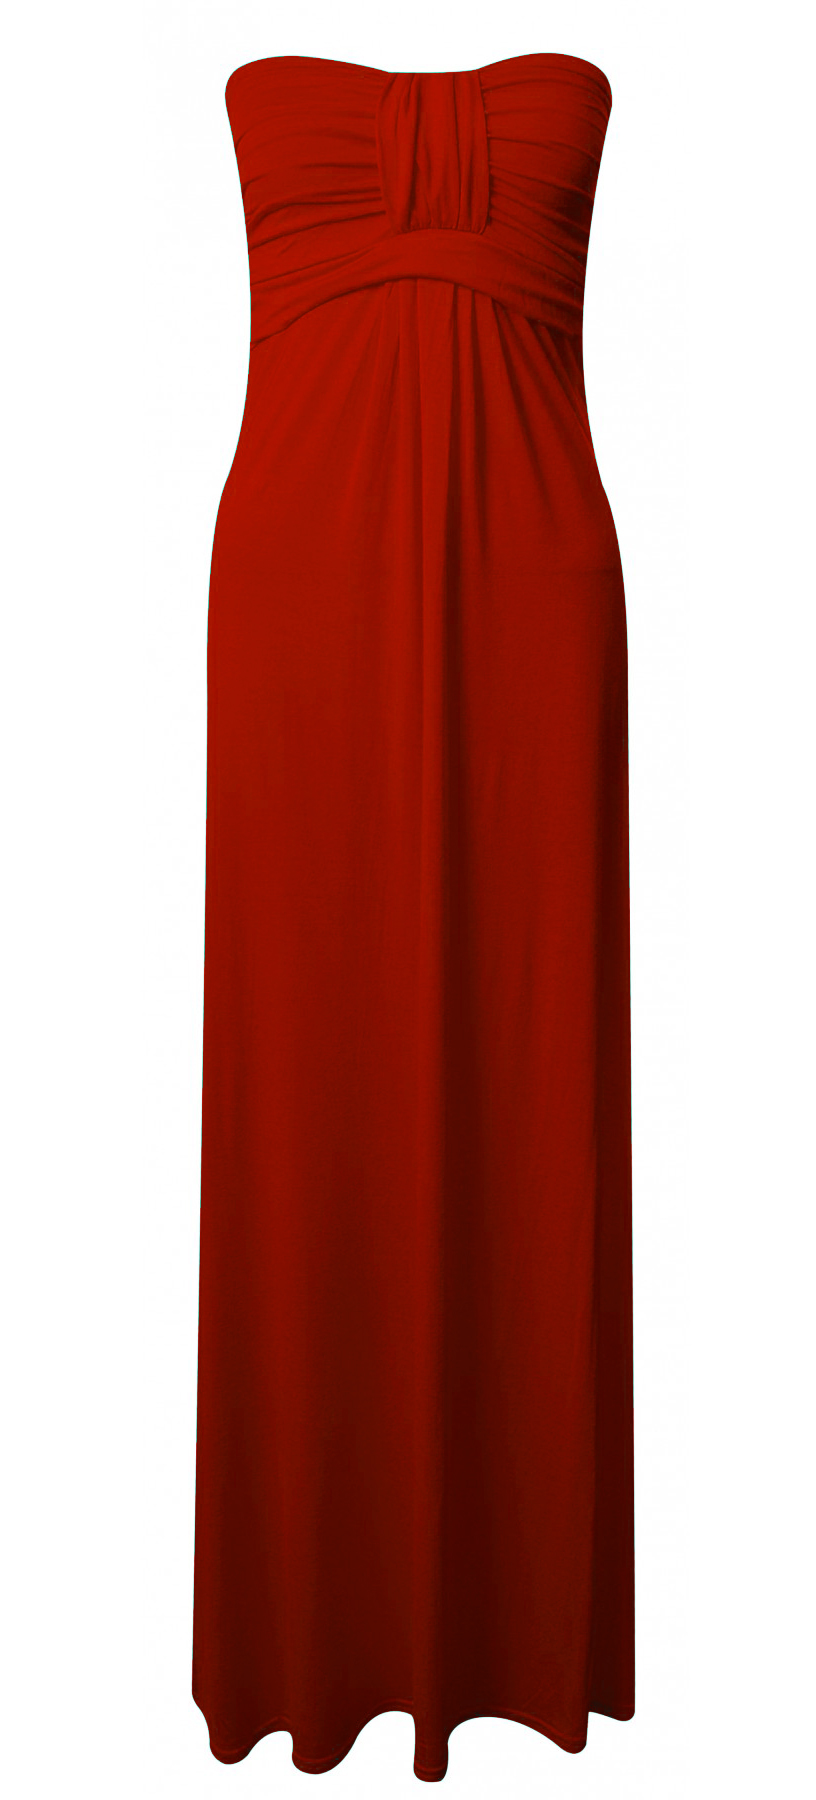 Women-Strapless-Long-Maxi-Dress-Ladies-Knot-Front-Boobtube-Jersey-Stretch-UK8-14